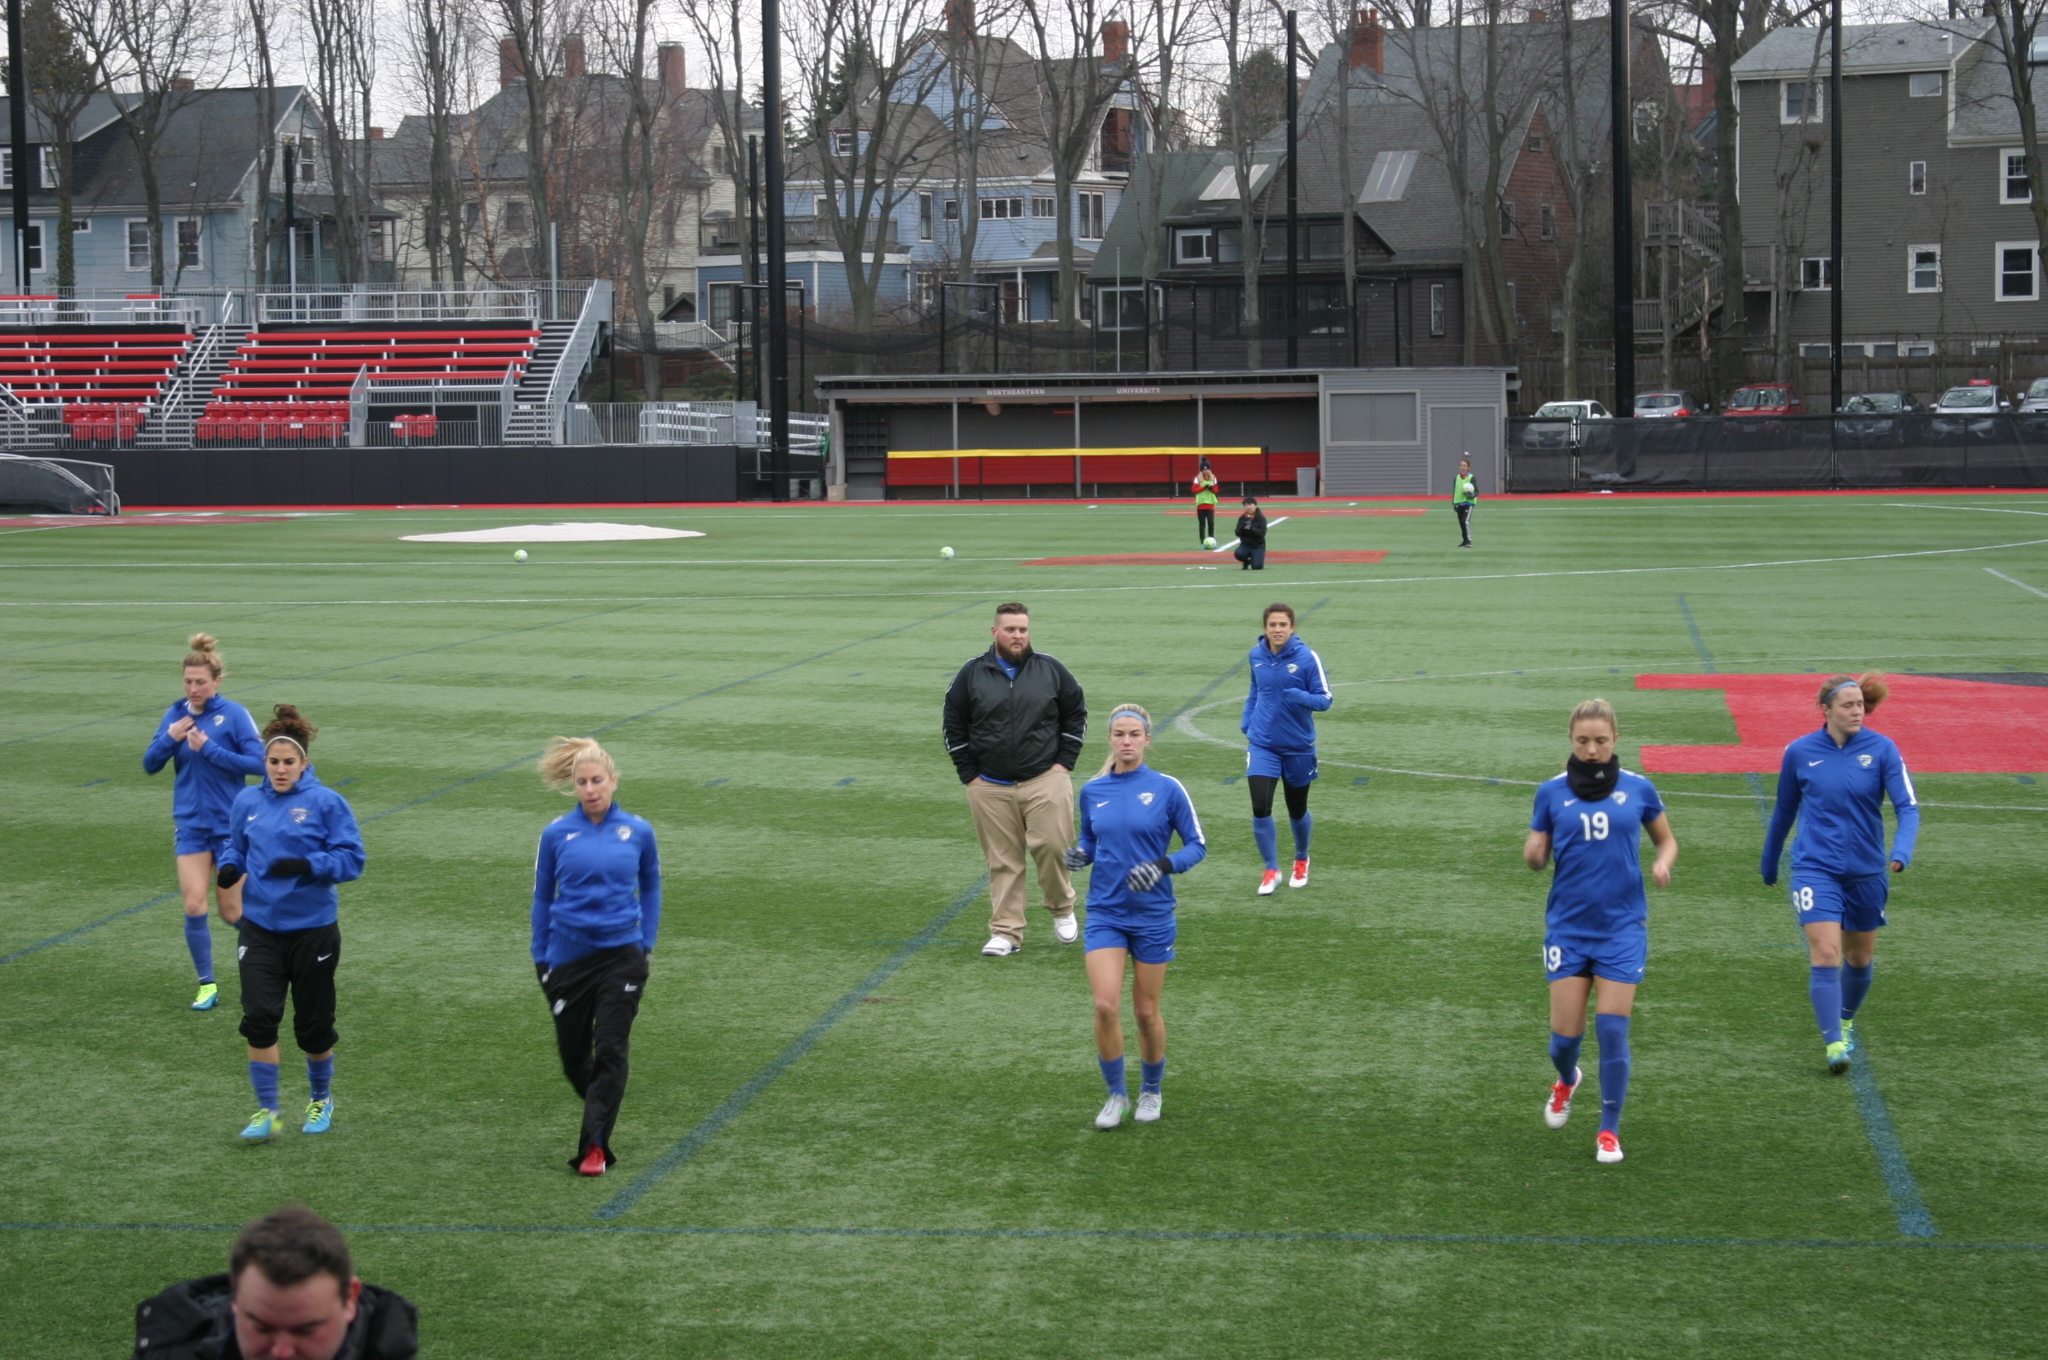 Warming up was a challenge with kickoff temps in the low 30s.